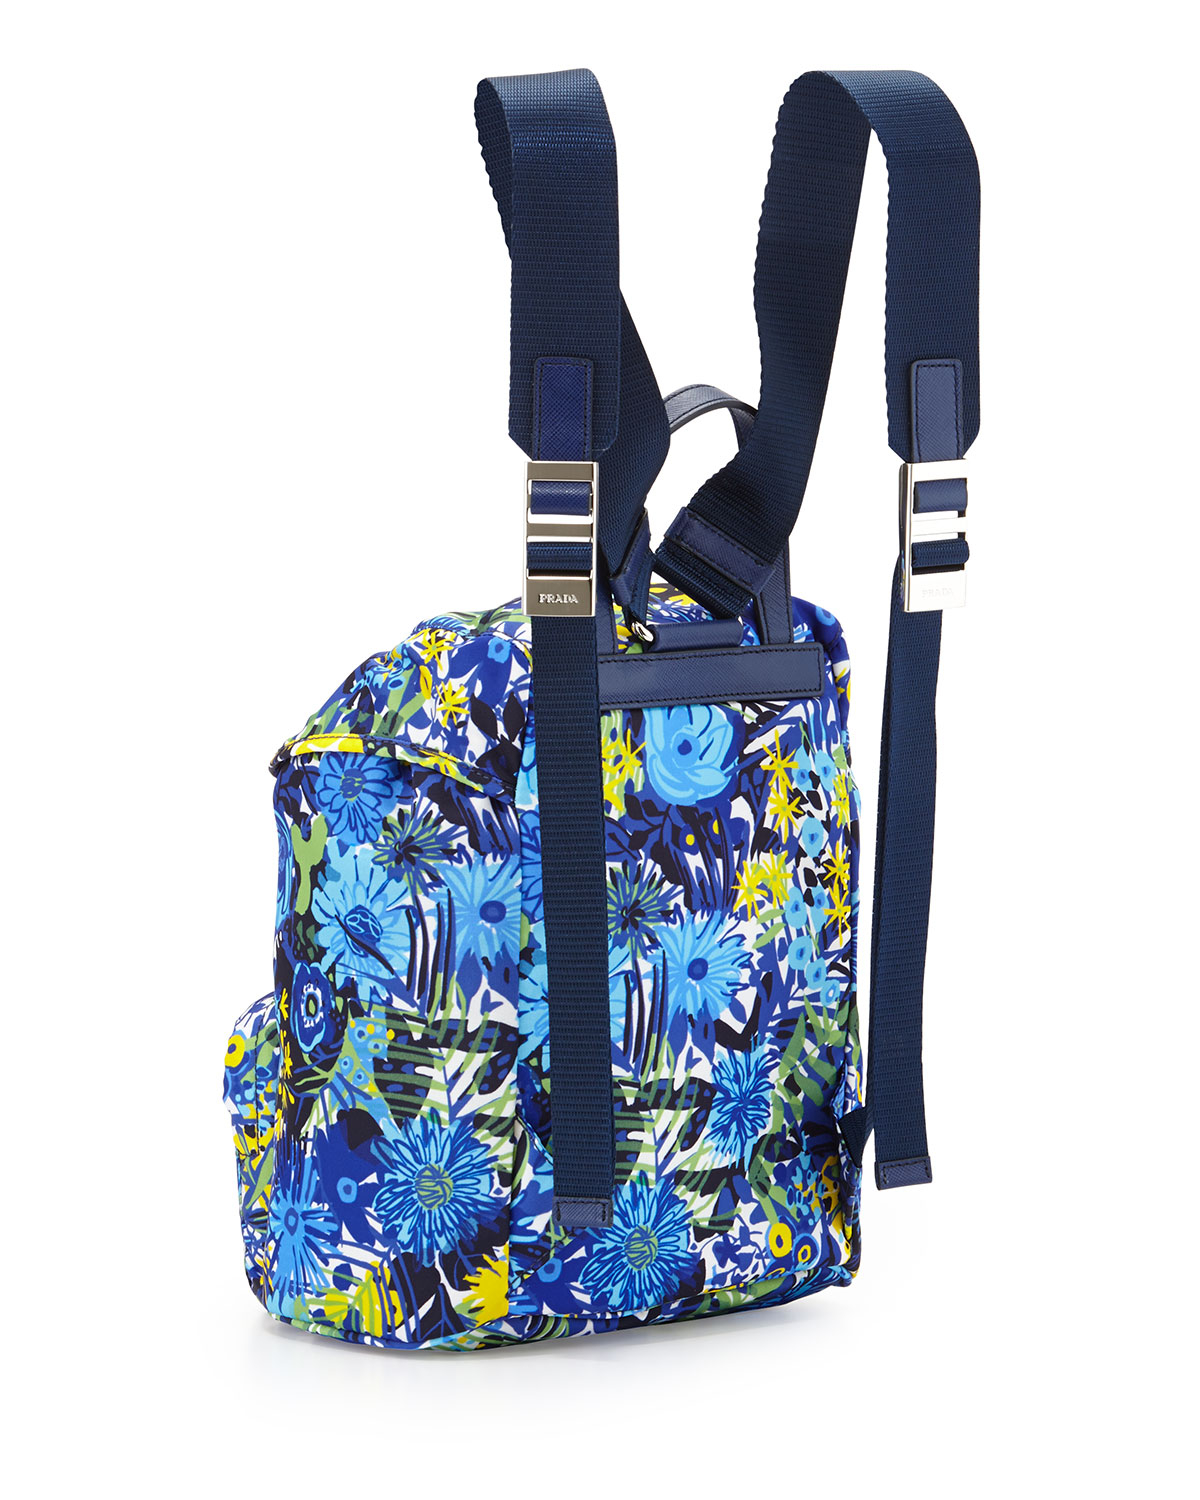 Prada Nylon Small Floral-Print Backpack in Blue | Lyst